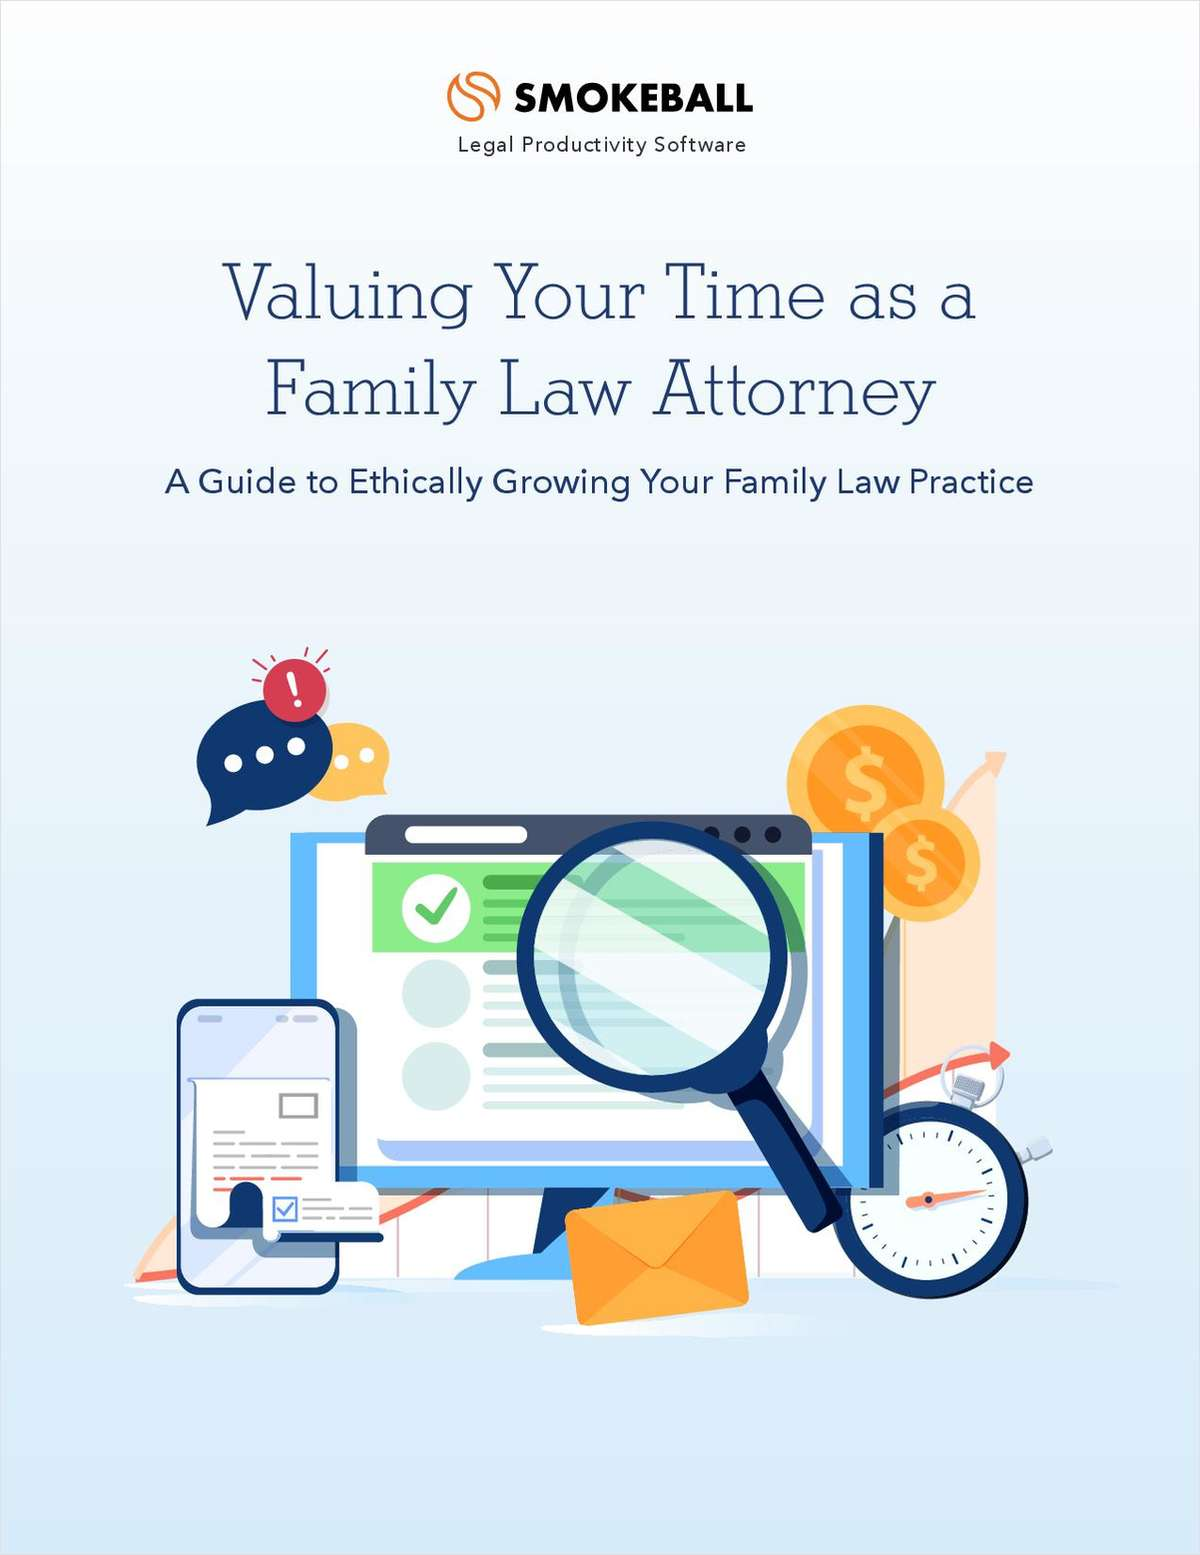 Valuing Your Time: A Guide to Ethically Growing Your Family Law Practice